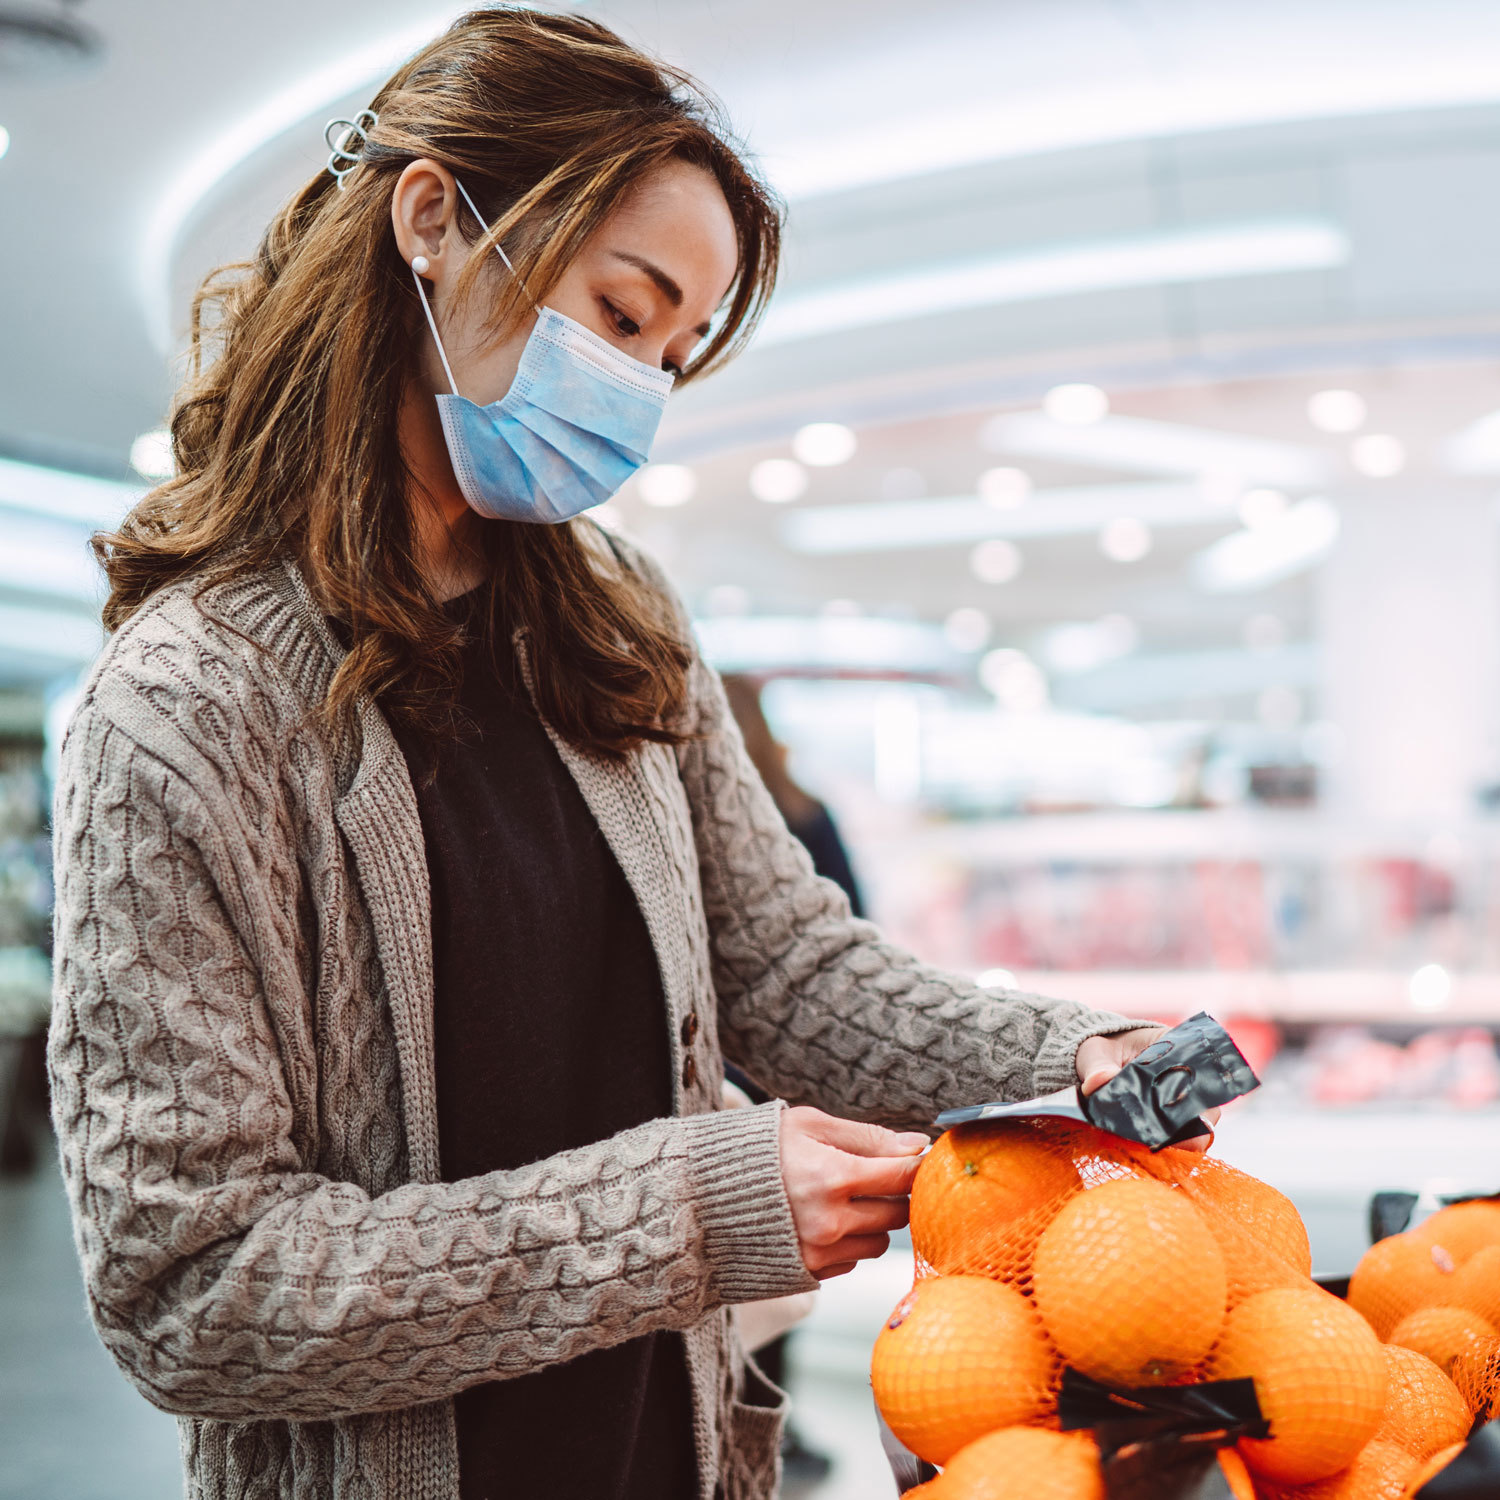 woman wearing a face mask and picking out produce at a grocery store